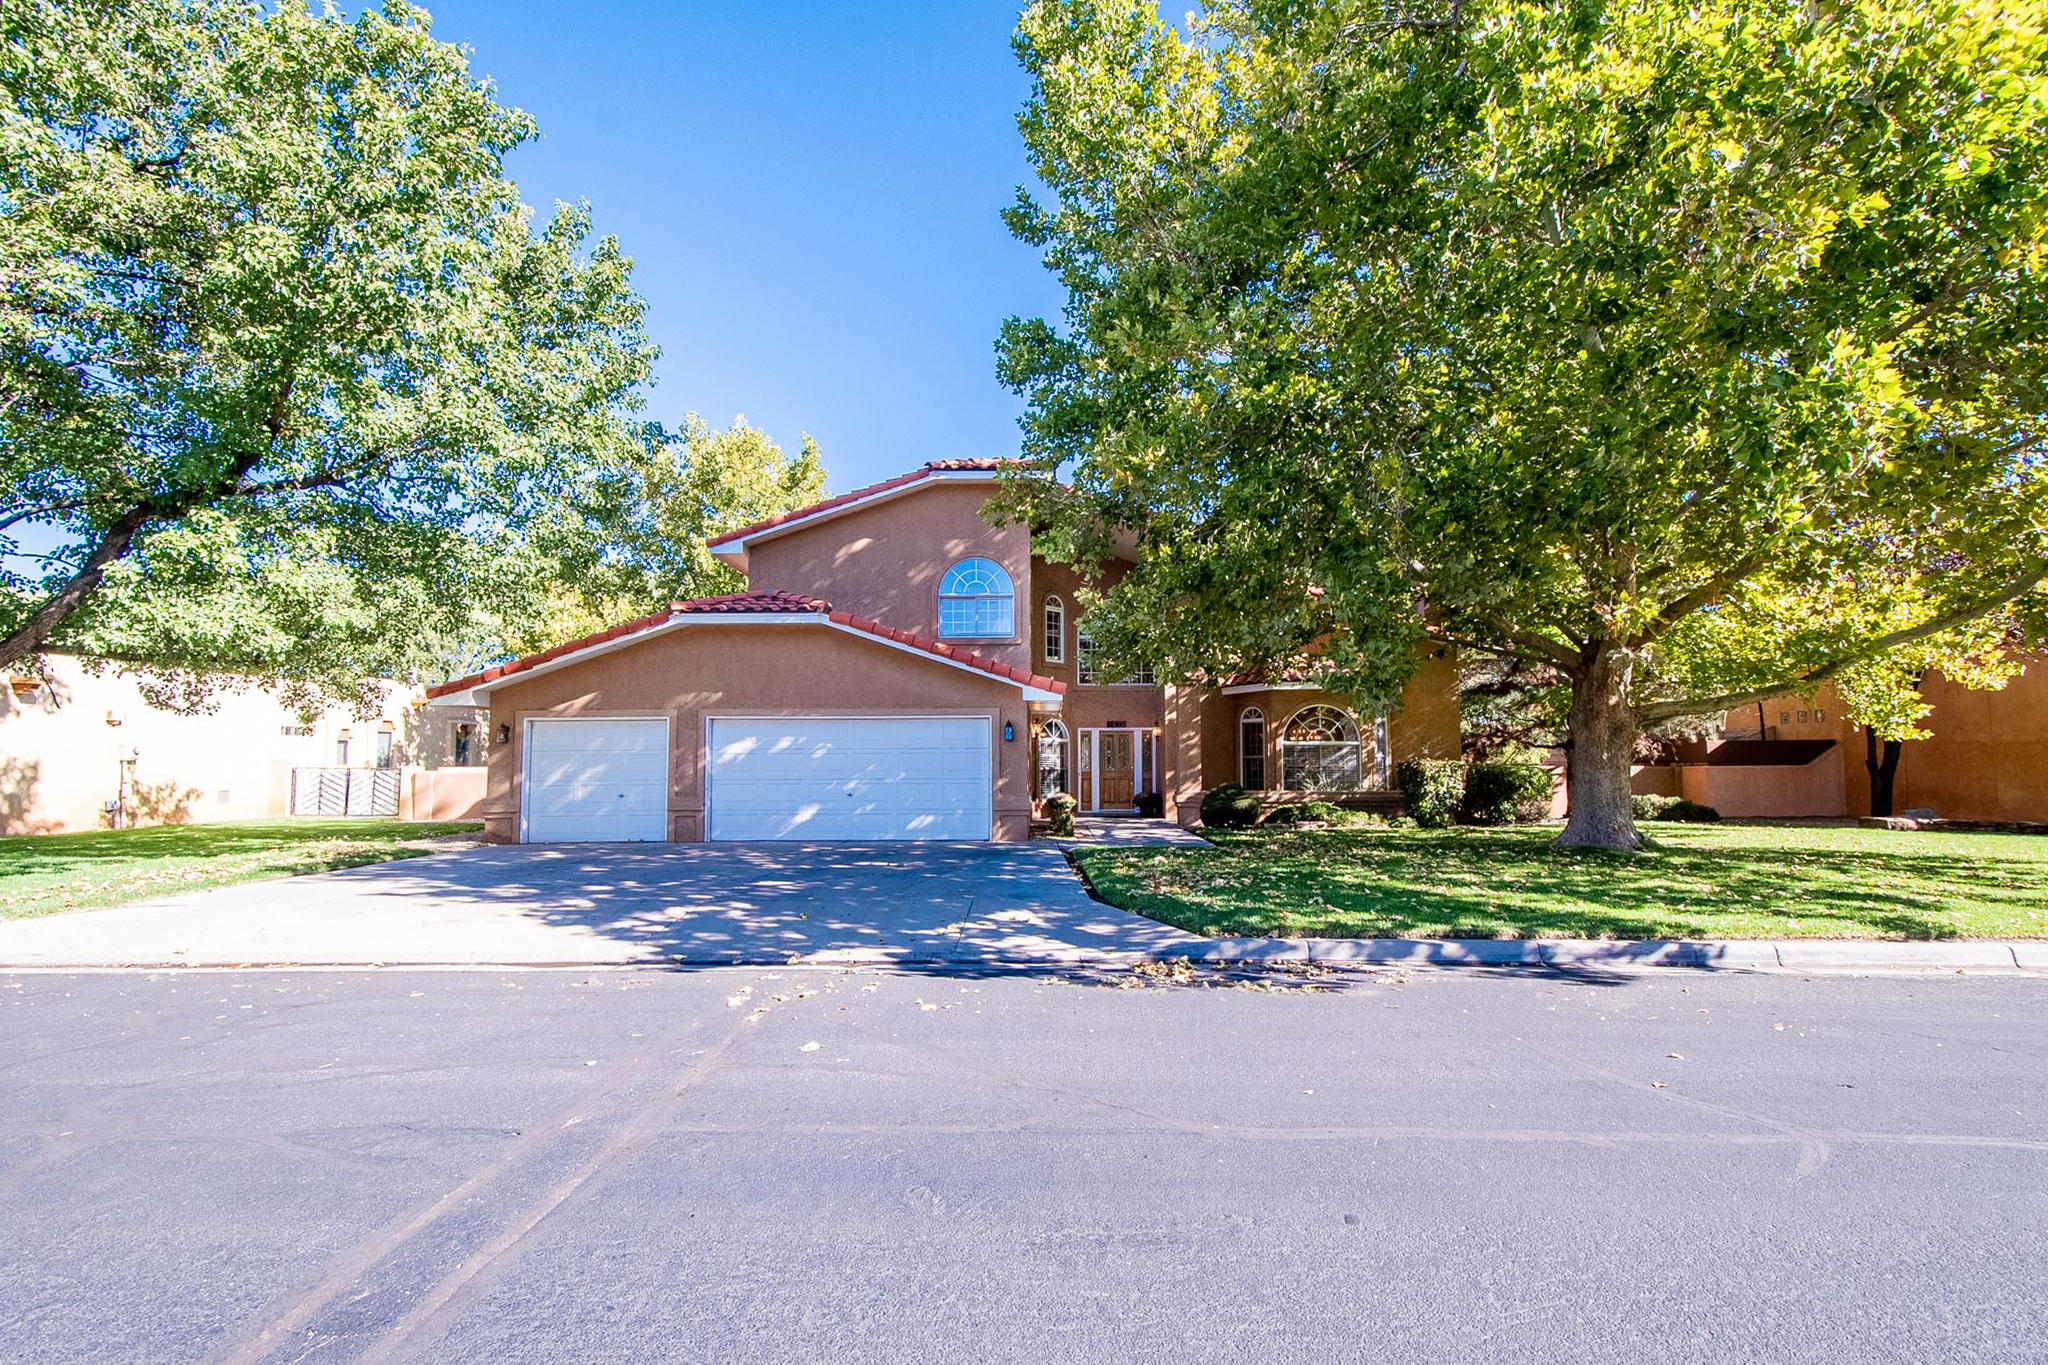 Wonderful home in the highly desirable gated community of Rancho Caballero. Open floorplan is perfect for entertaining. Completely landscaped backyard with a built in bbq grill, covered patio and firepit.